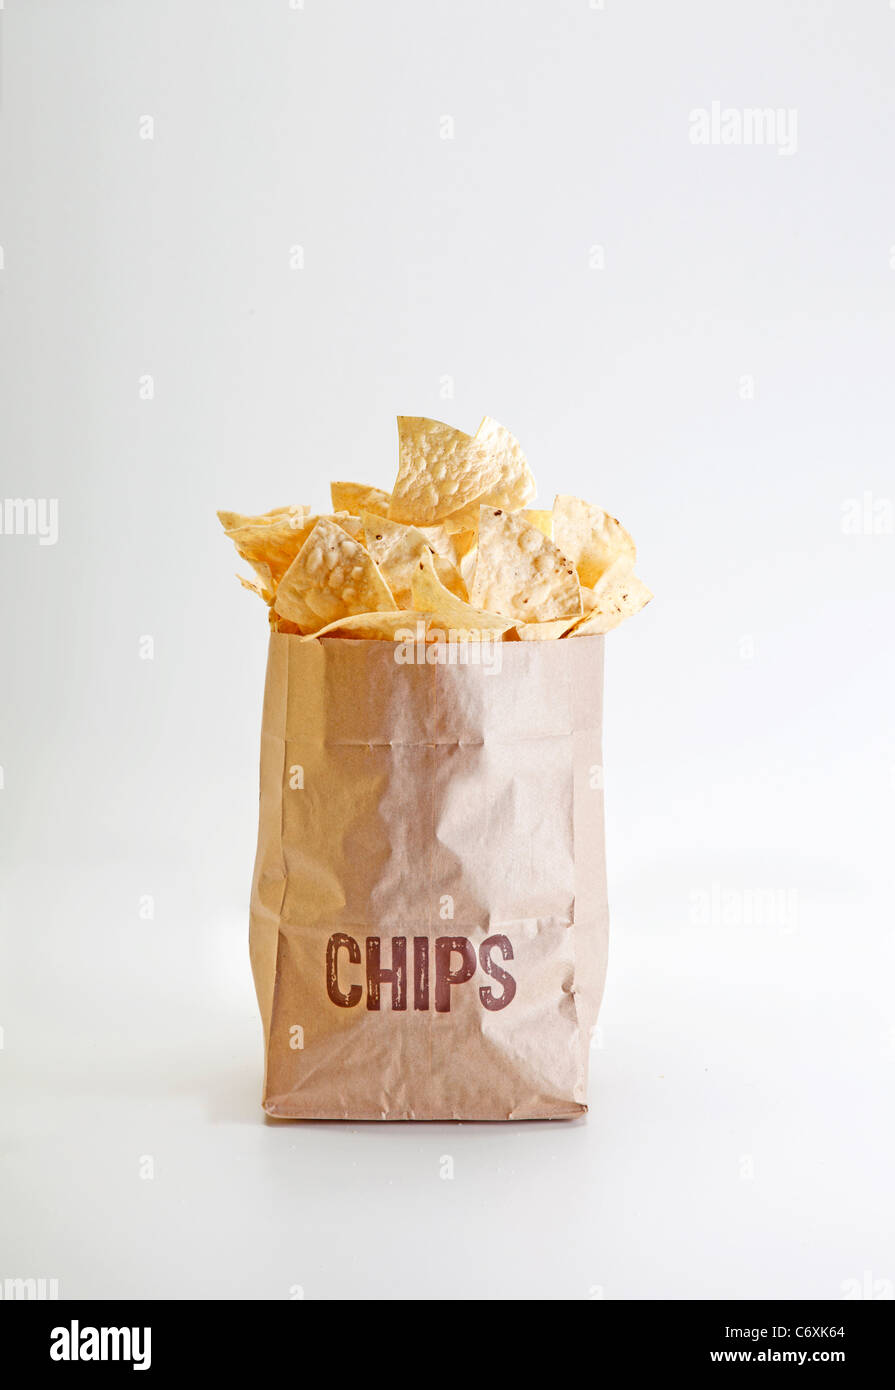 bag of Chipotle brand restaurant chips - Stock Image